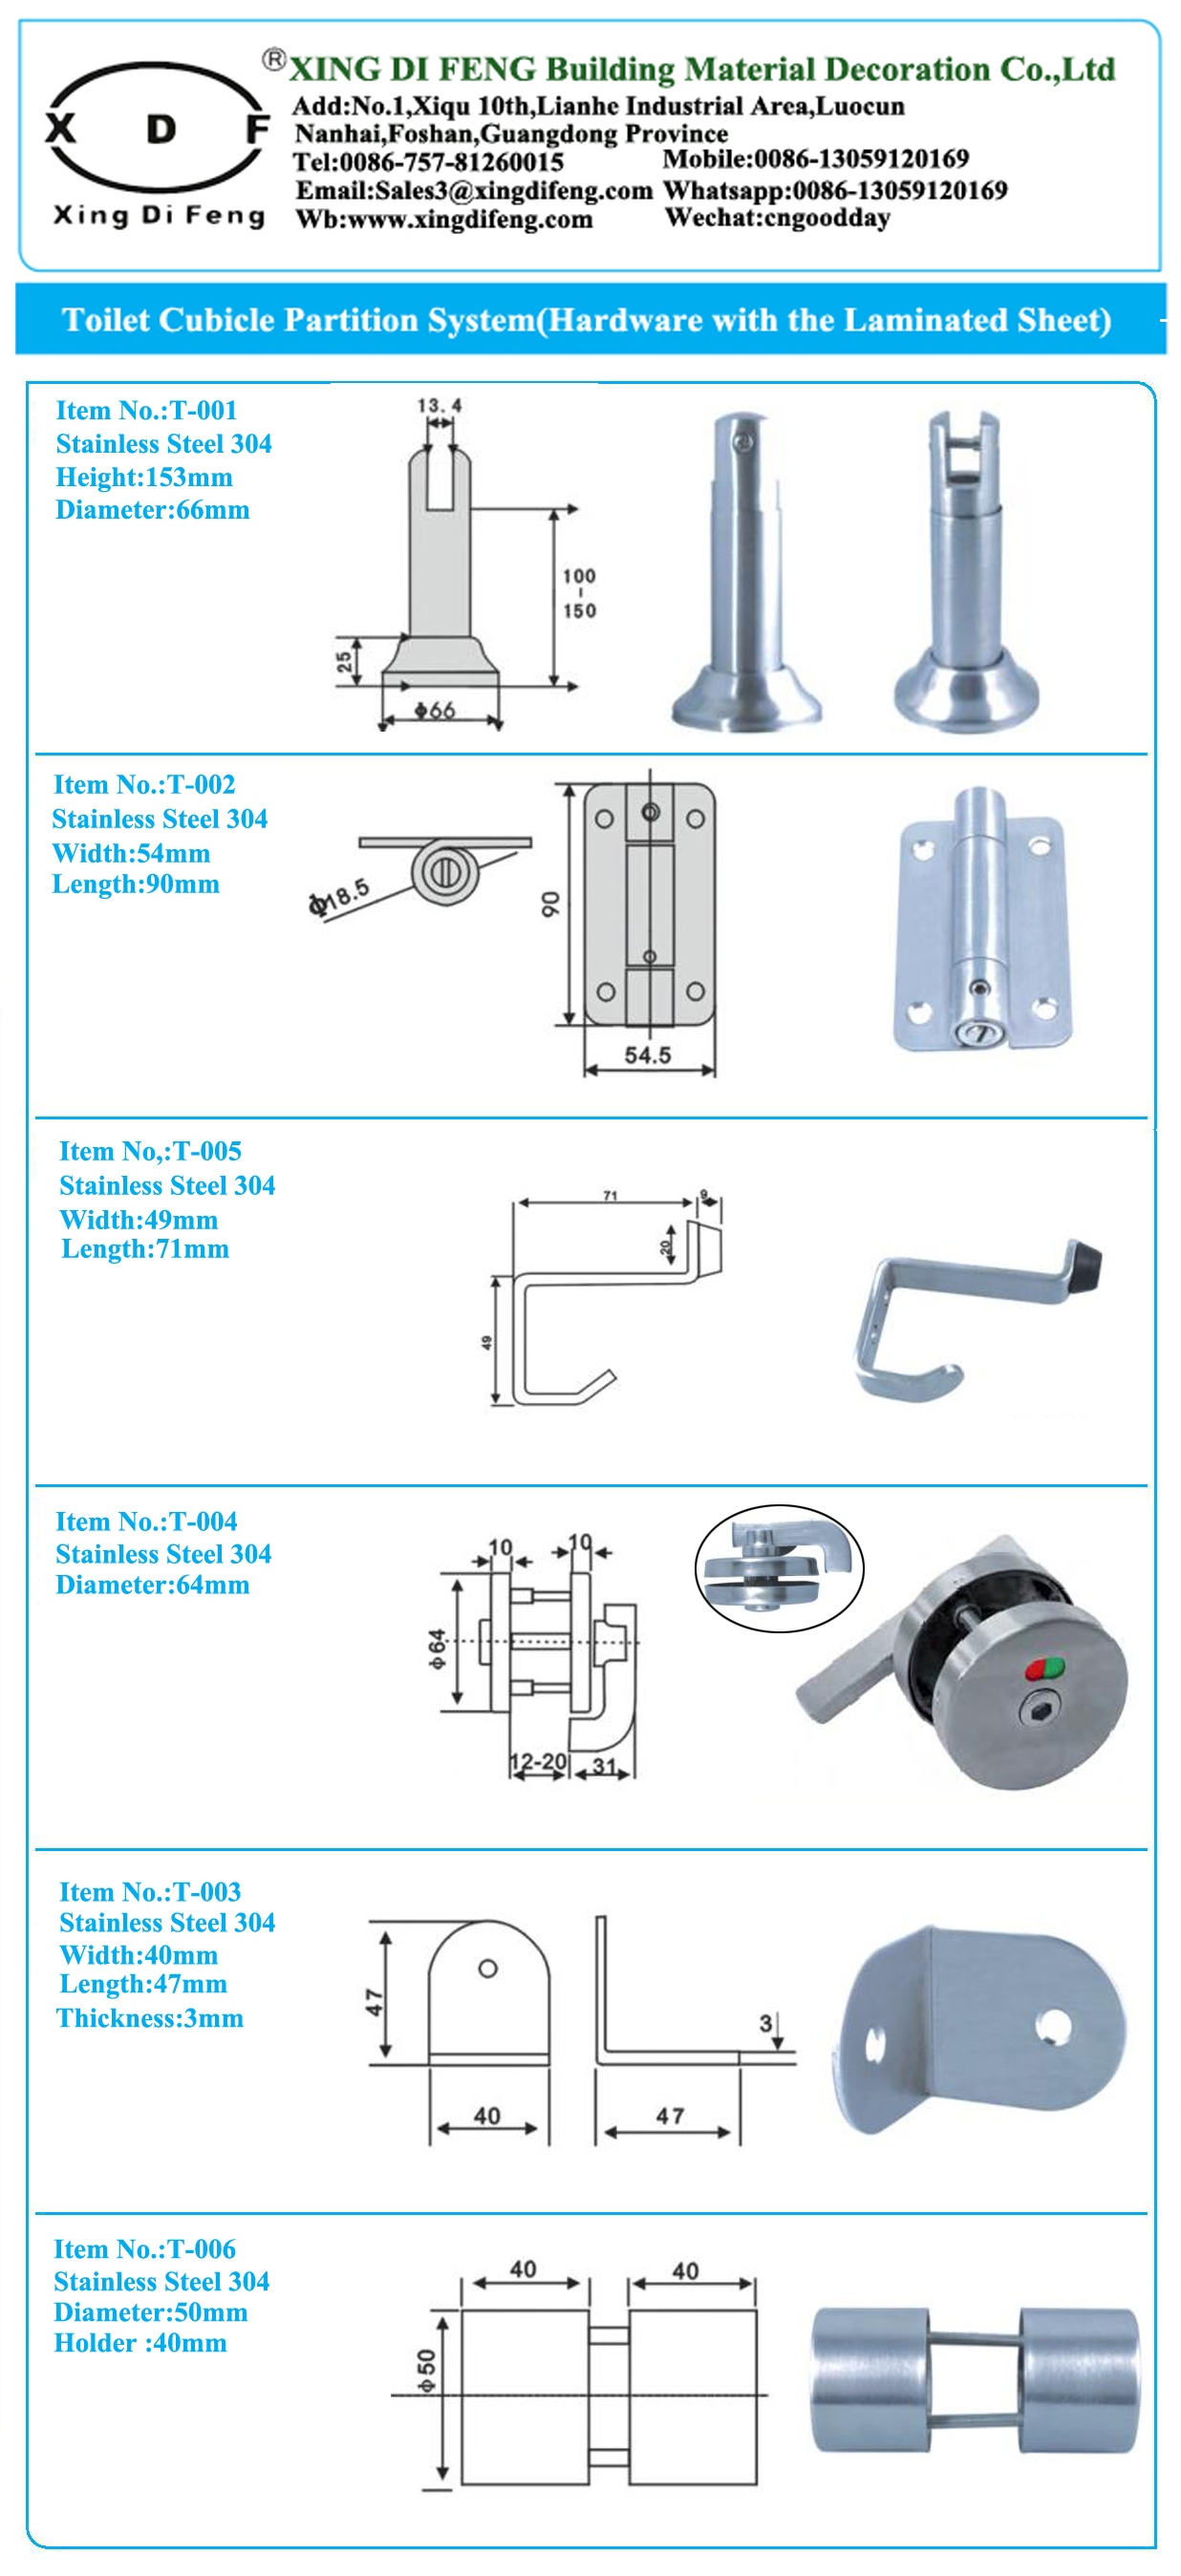 Xdf 304 Stainless Steel Toilet Partition Hardware Bathroom Cubicle Accessories Set Fittings Buy Bathroom Partition Fittings Toilet Partition Hardware Toilet Cubicle Accessories Product On Alibaba Com